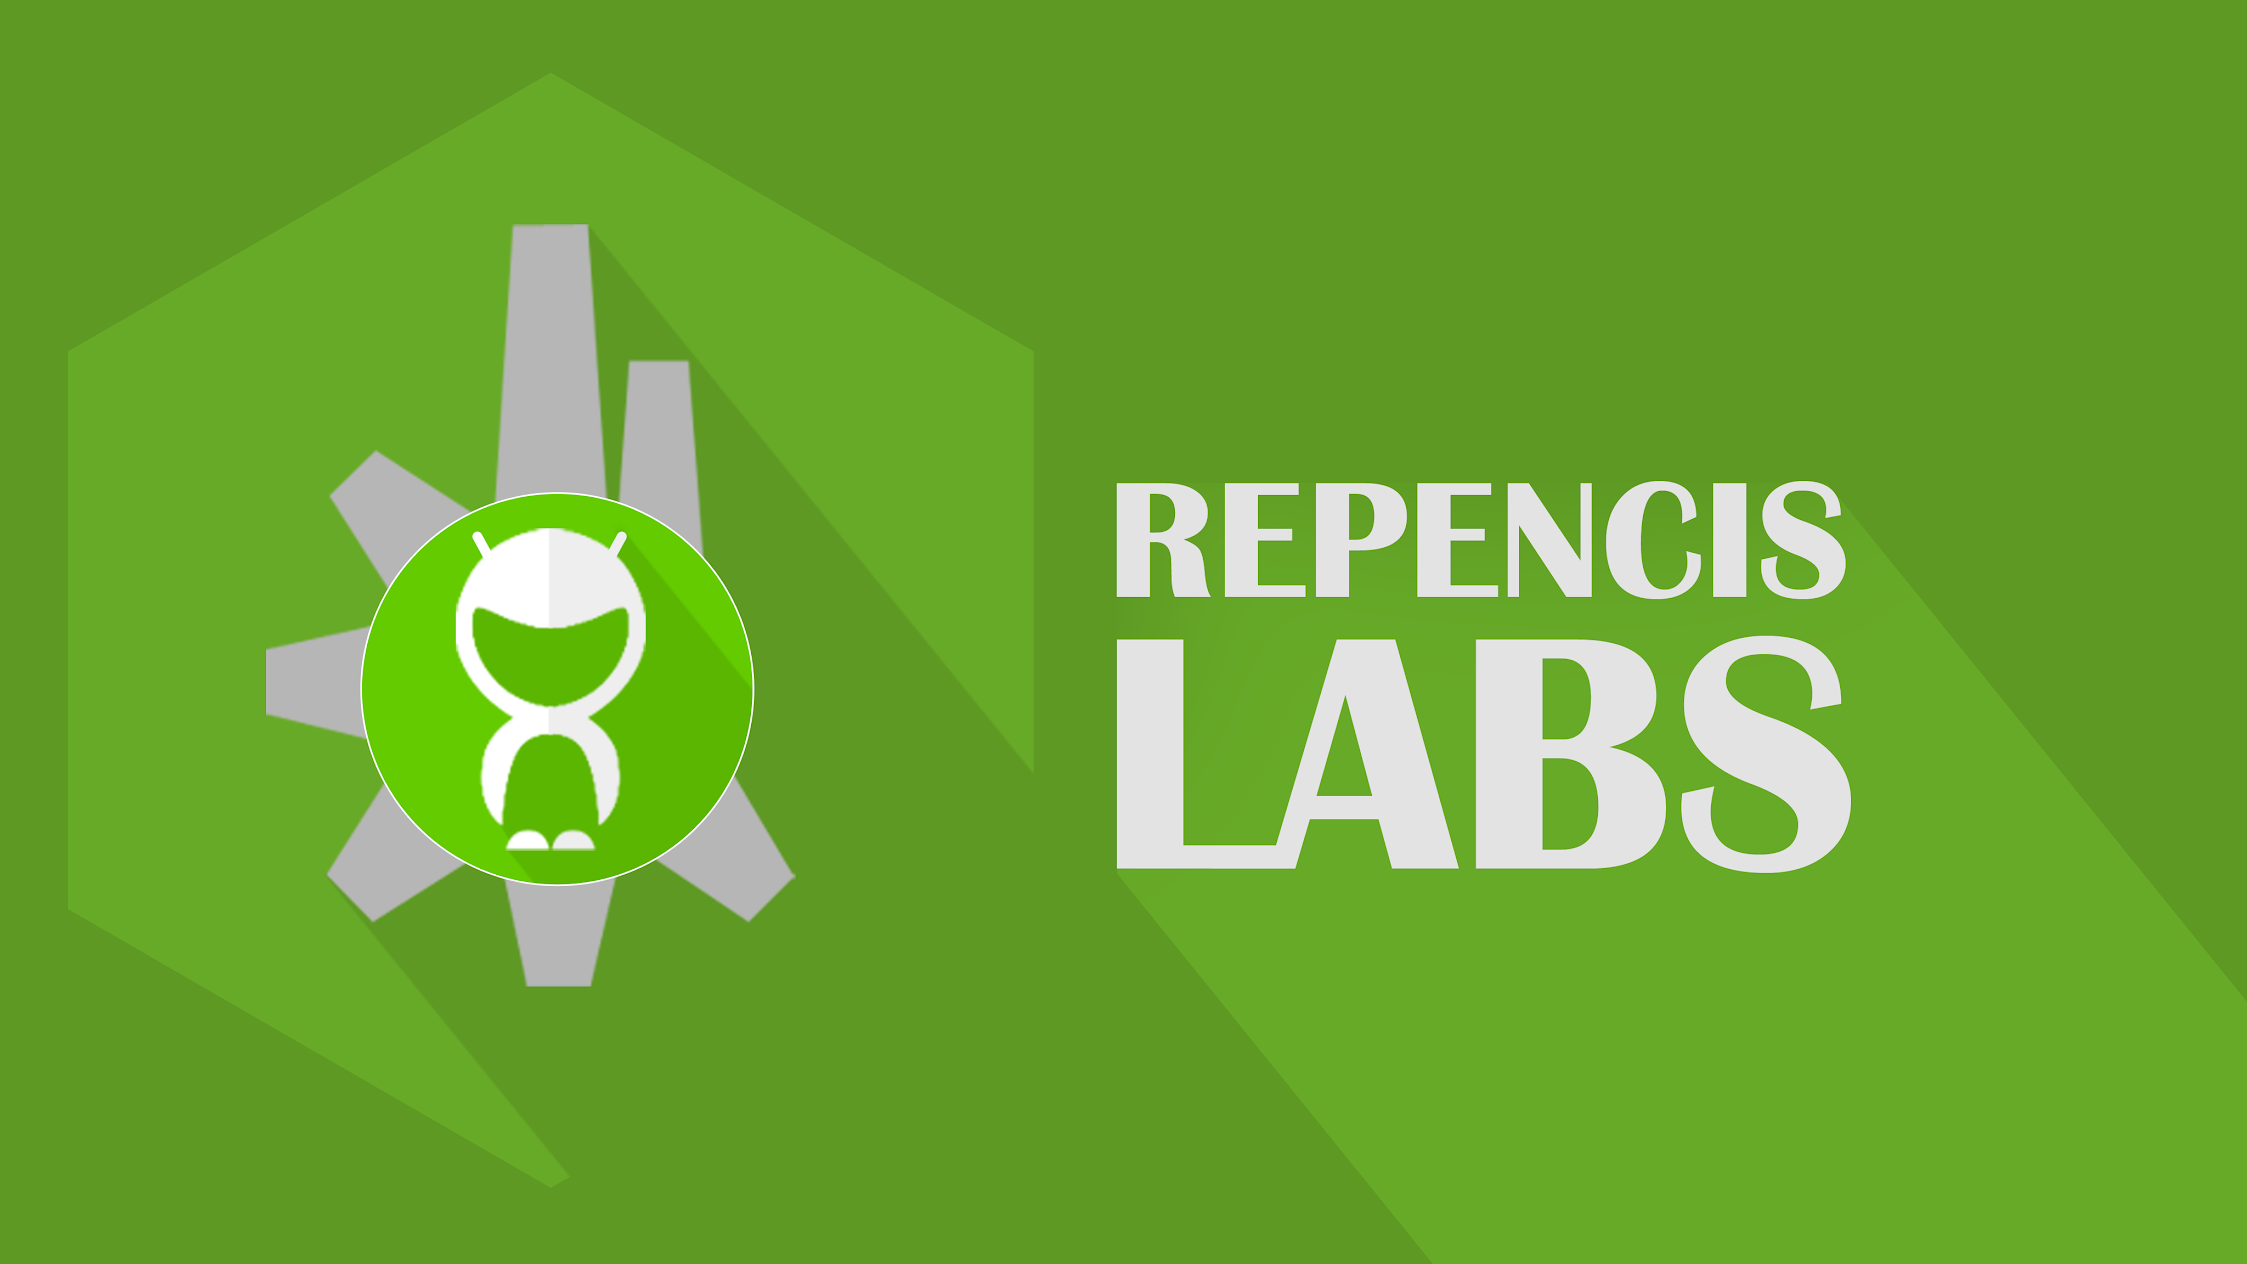 Repencis Labs